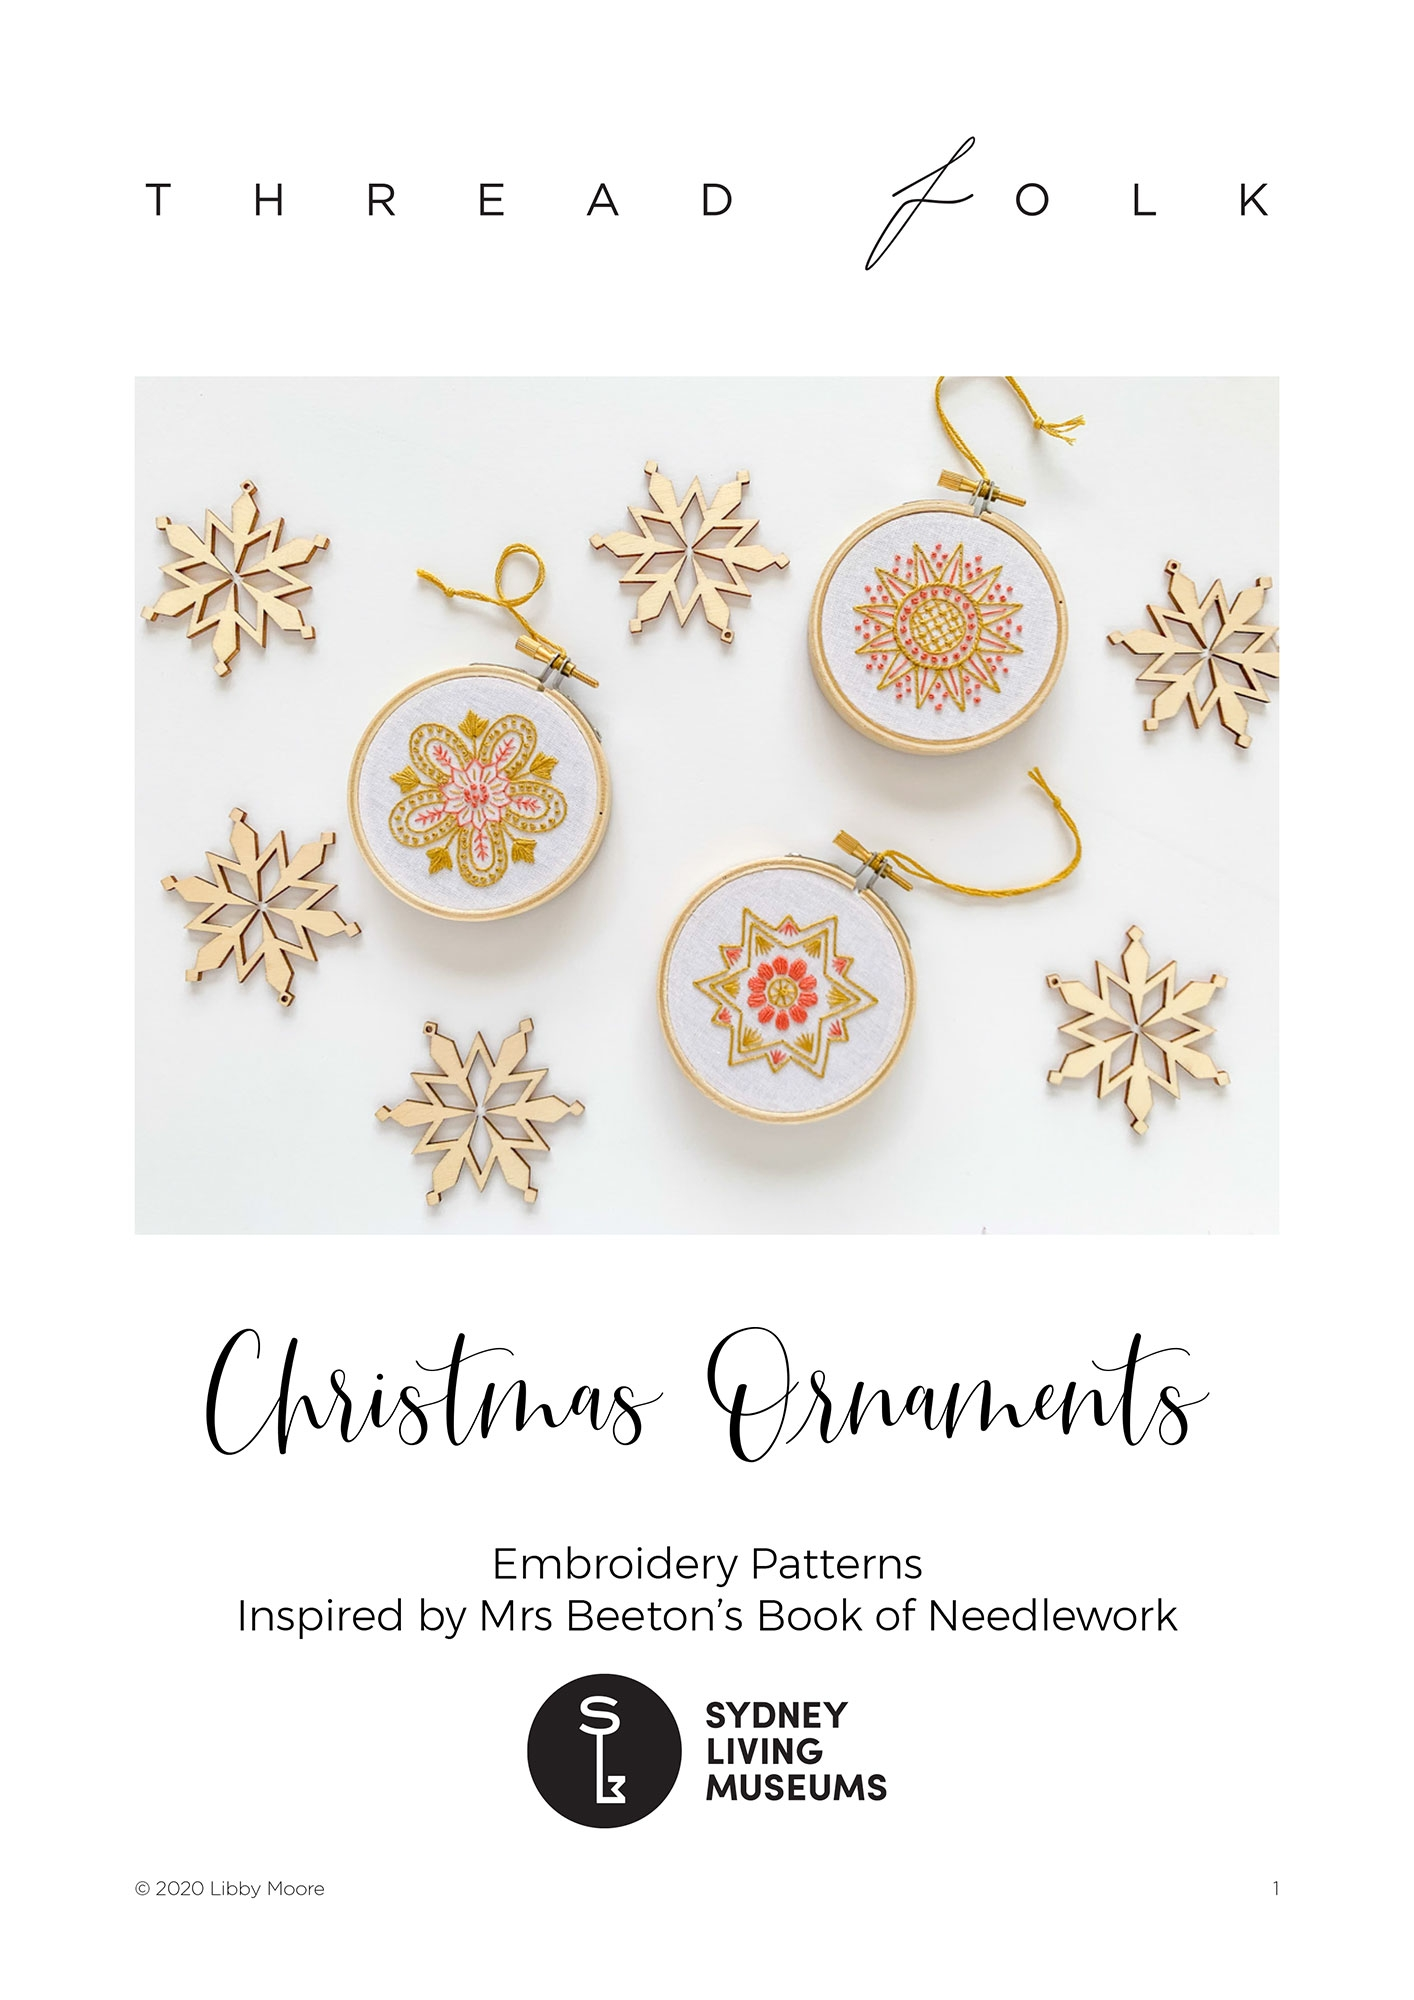 Cover image for instruction booklet with photo of ornaments.